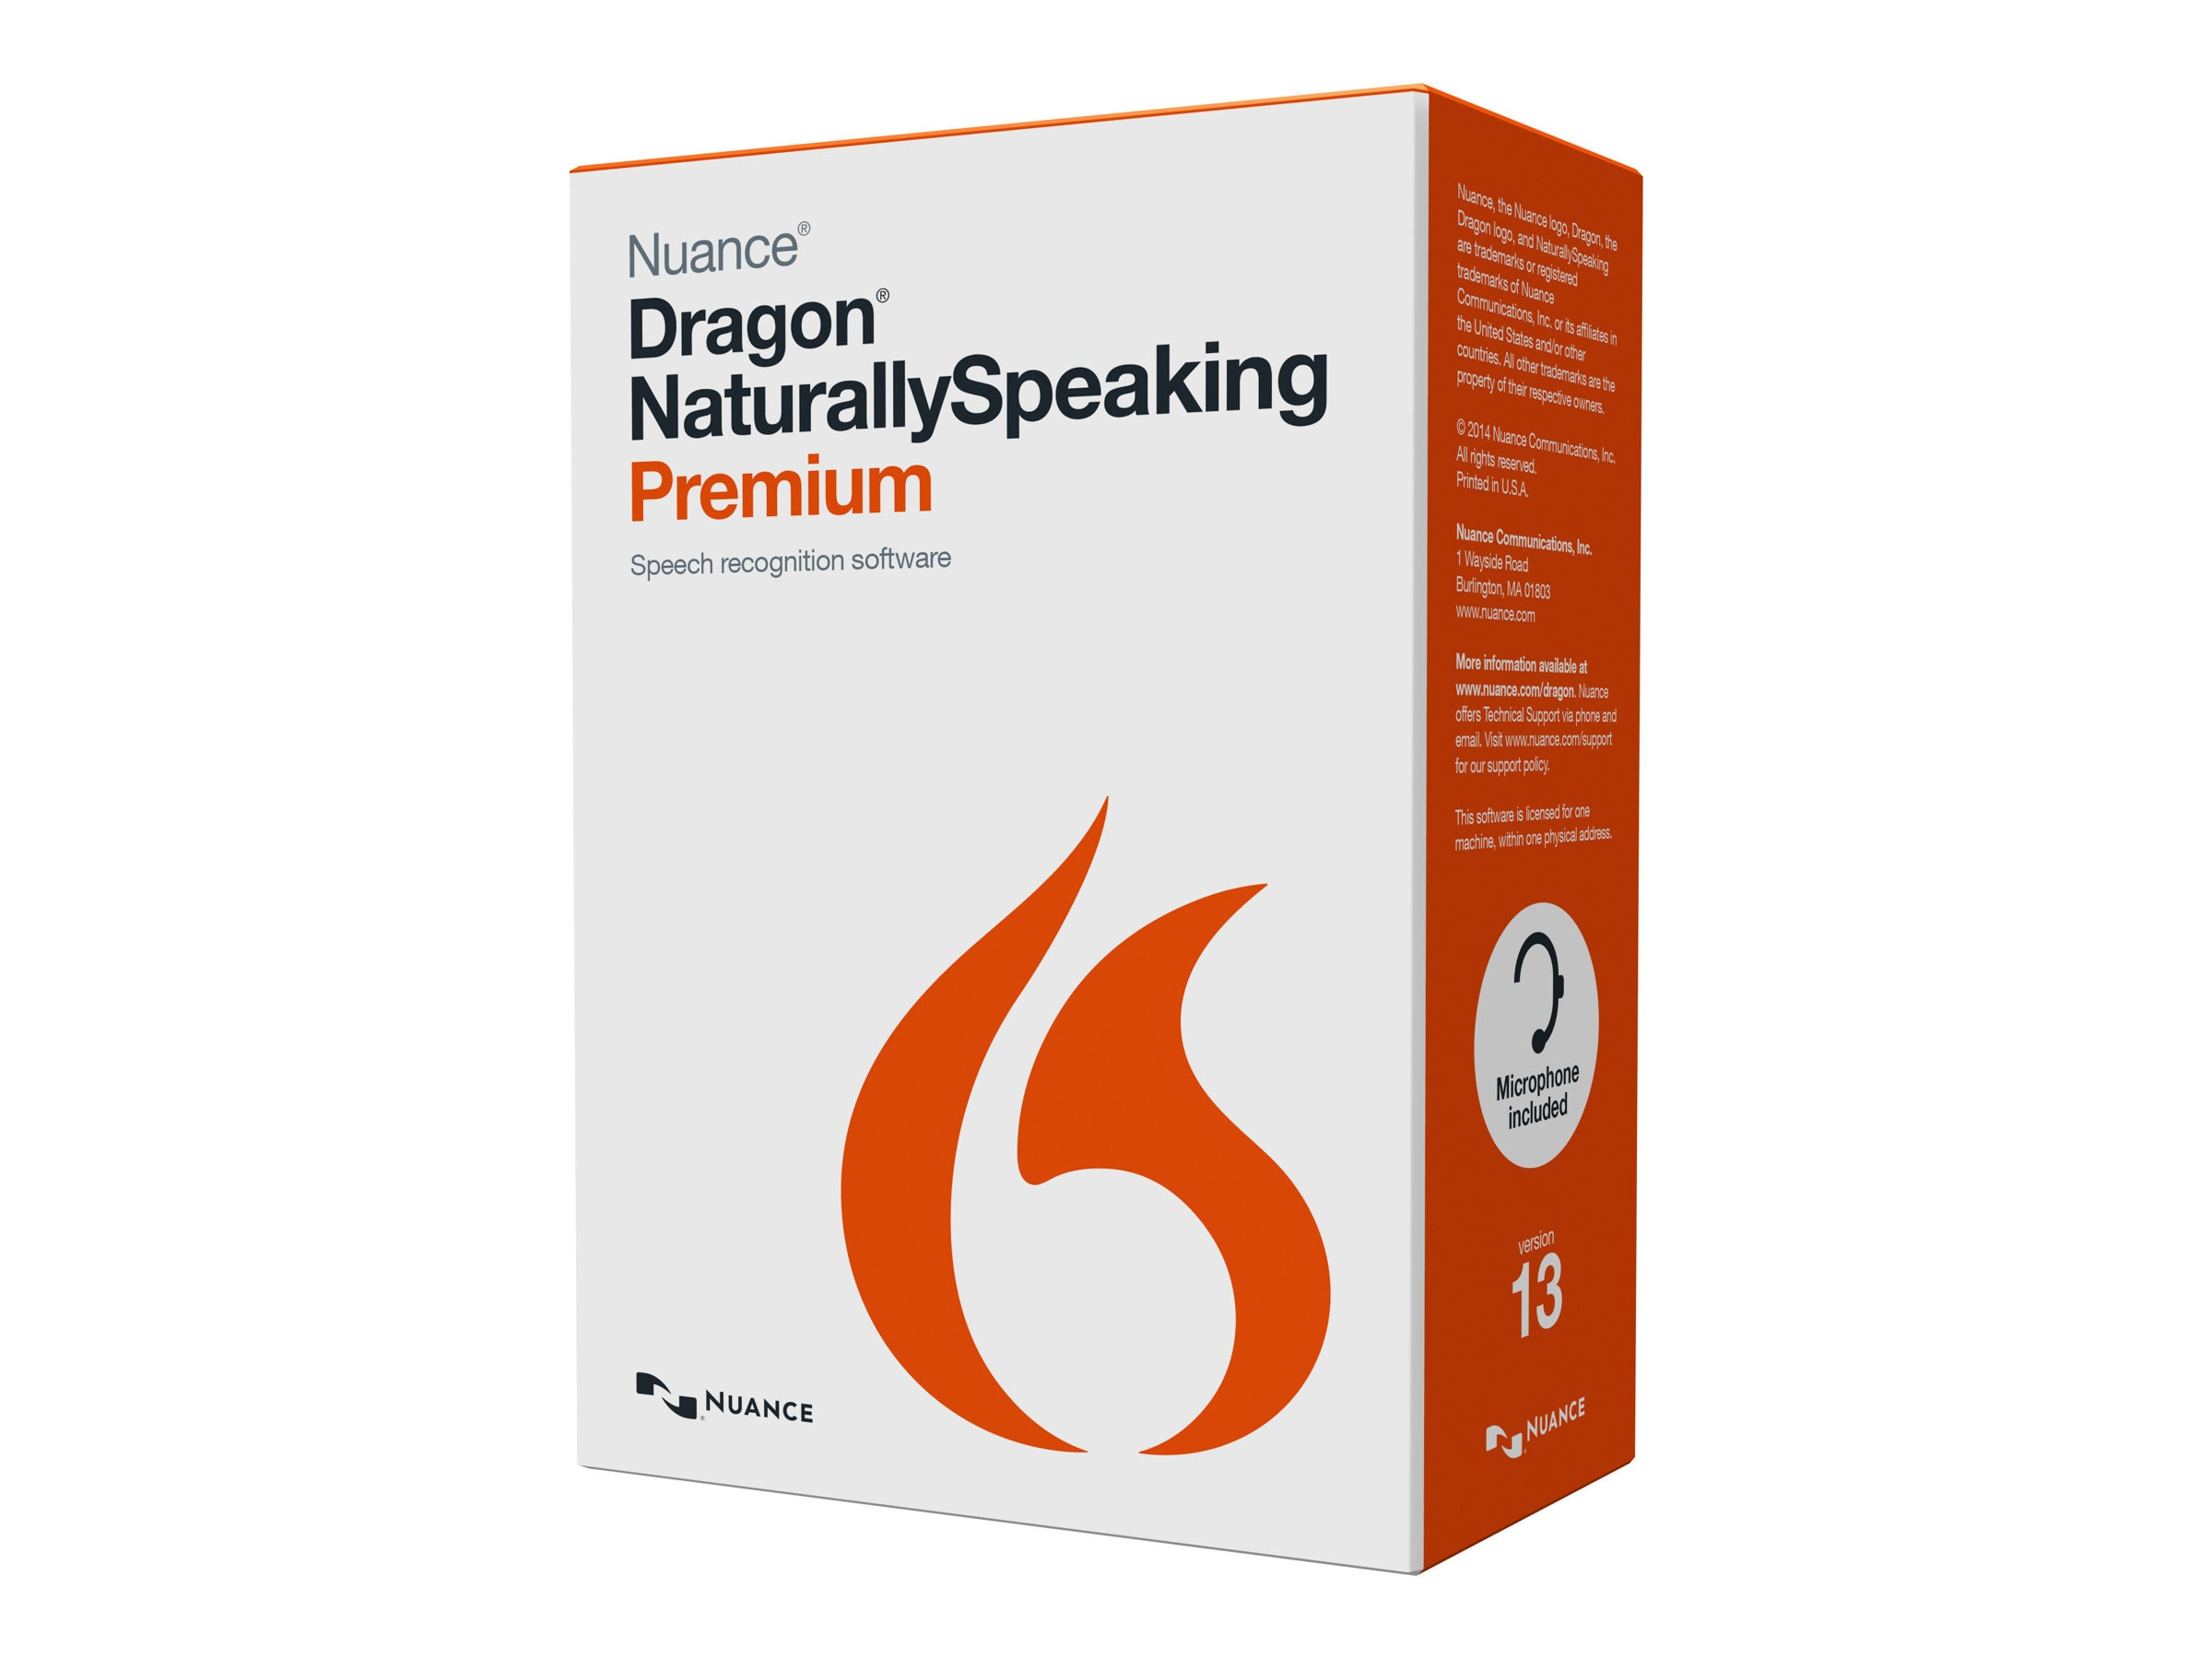 Nuance Dragon NaturallySpeaking 13.0 Premium Upgrade from v11 and Up - No Headset, K689A-K00-13.0, 17684349, Software - Voice Recognition